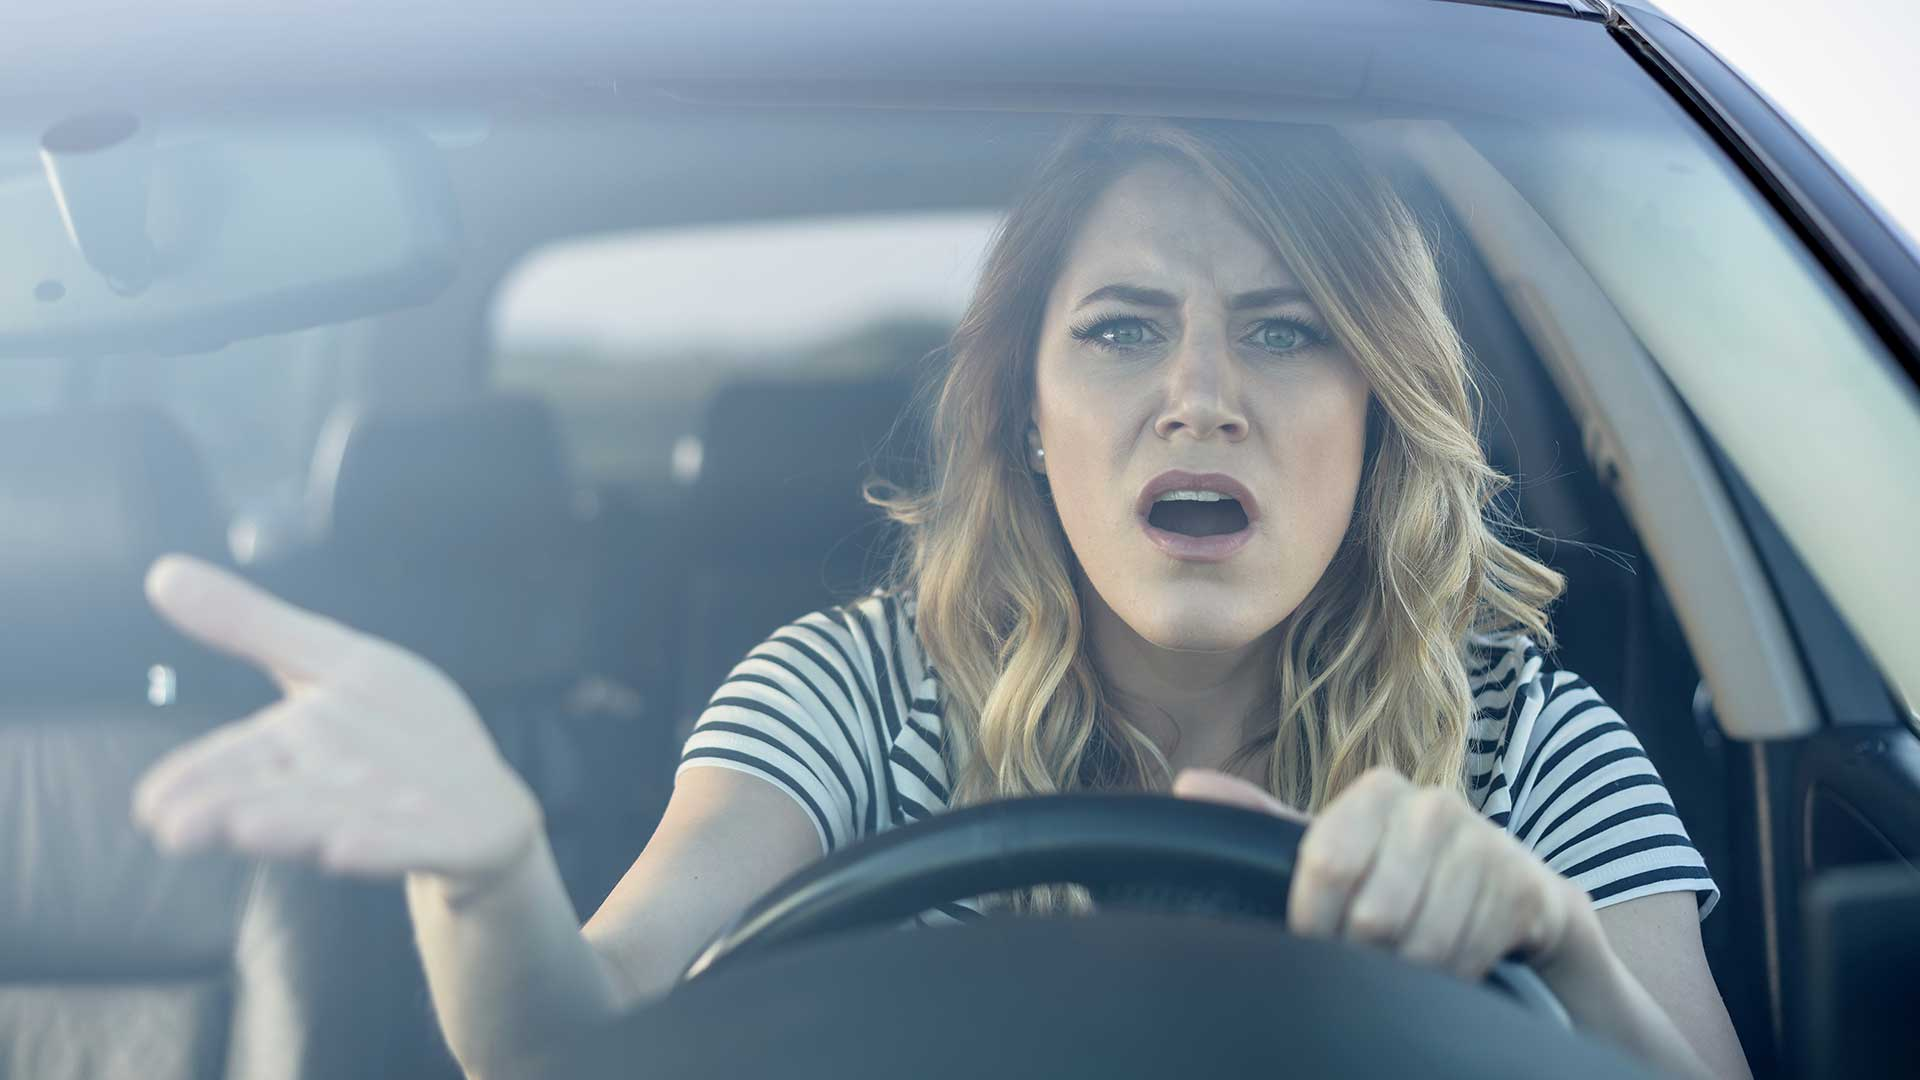 Woman-Driving-to-St-Paul-Forced-to-Turn-Around-in-Madison-After-Minnesota-Drivers-Refused-to-Let-Her-Change-Lanes.jpg